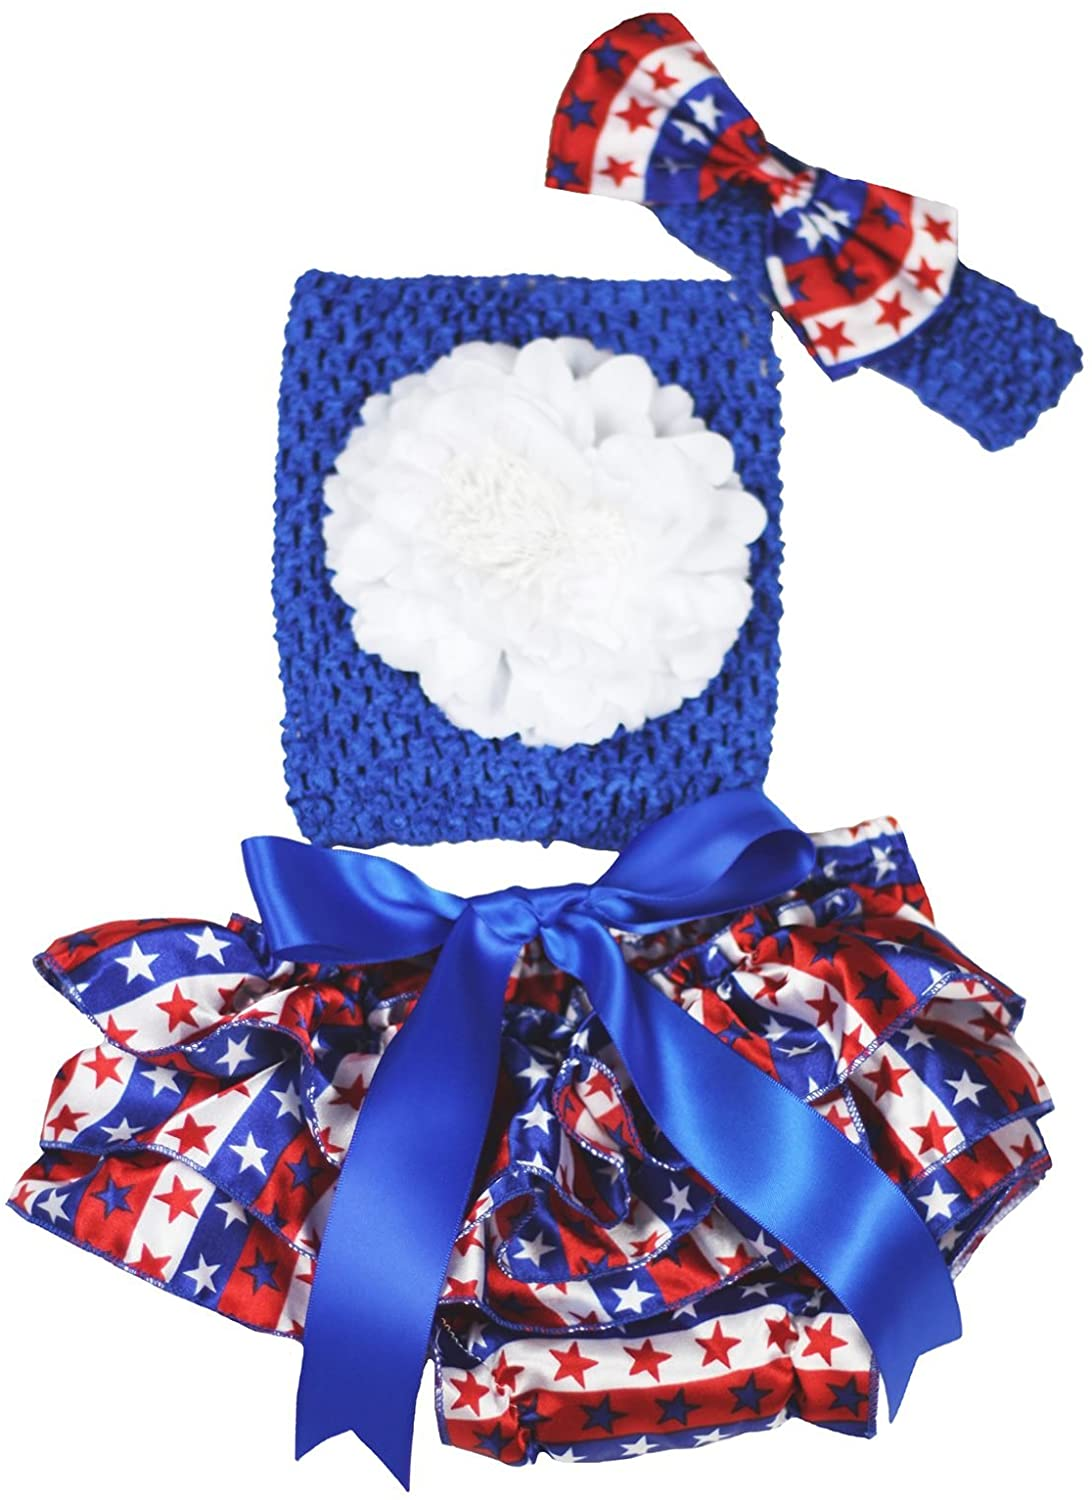 Petitebella White Flower Blue Tube Top Striped Stars Bloomer Baby Outfit 3-12m